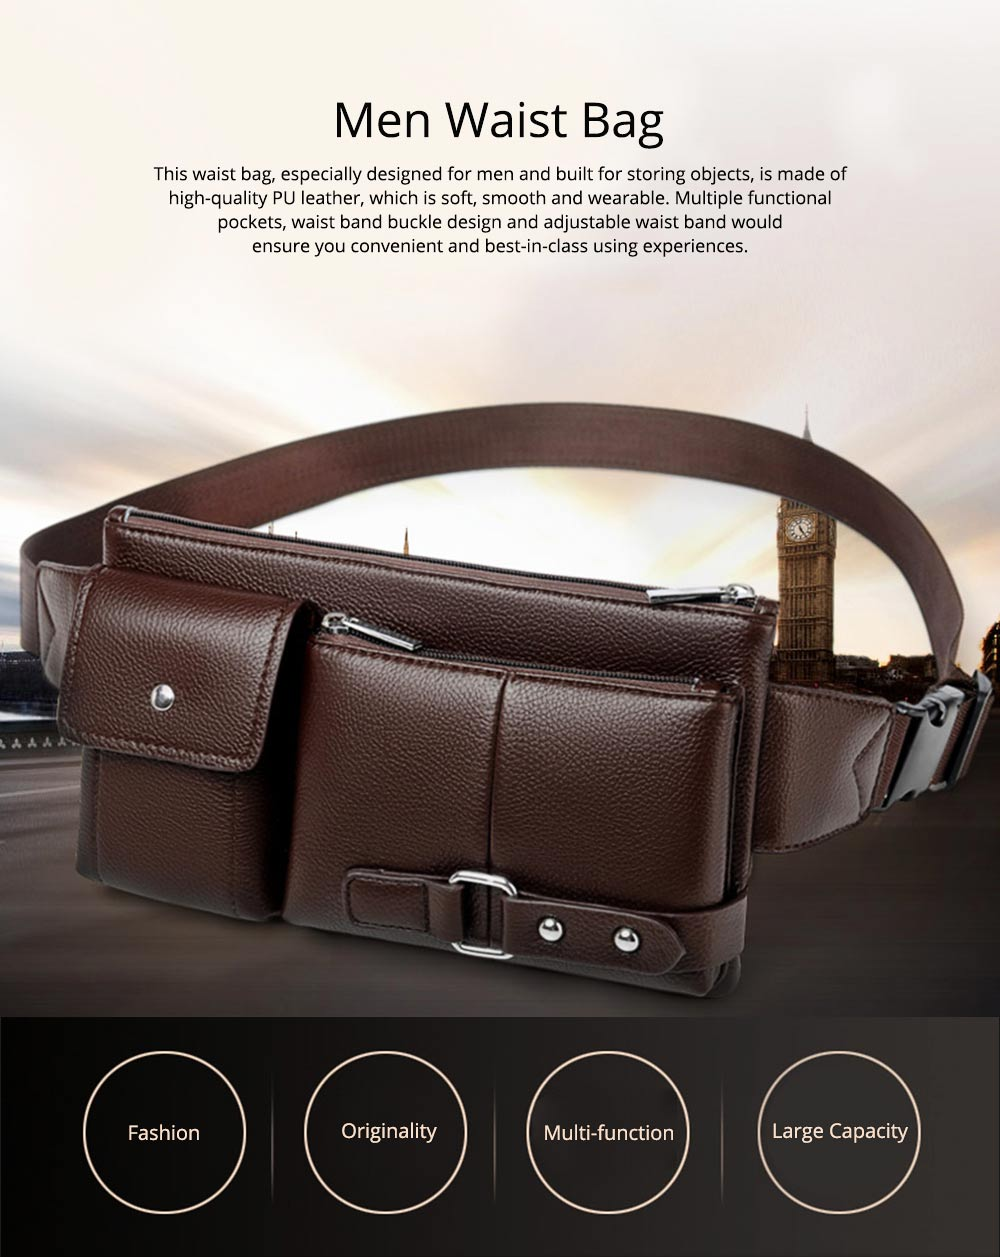 Minimalist Soft PU Leather Functional Men Waist Bag, Business Outdoors Sport Waist Shoulder Bag Wallet 0